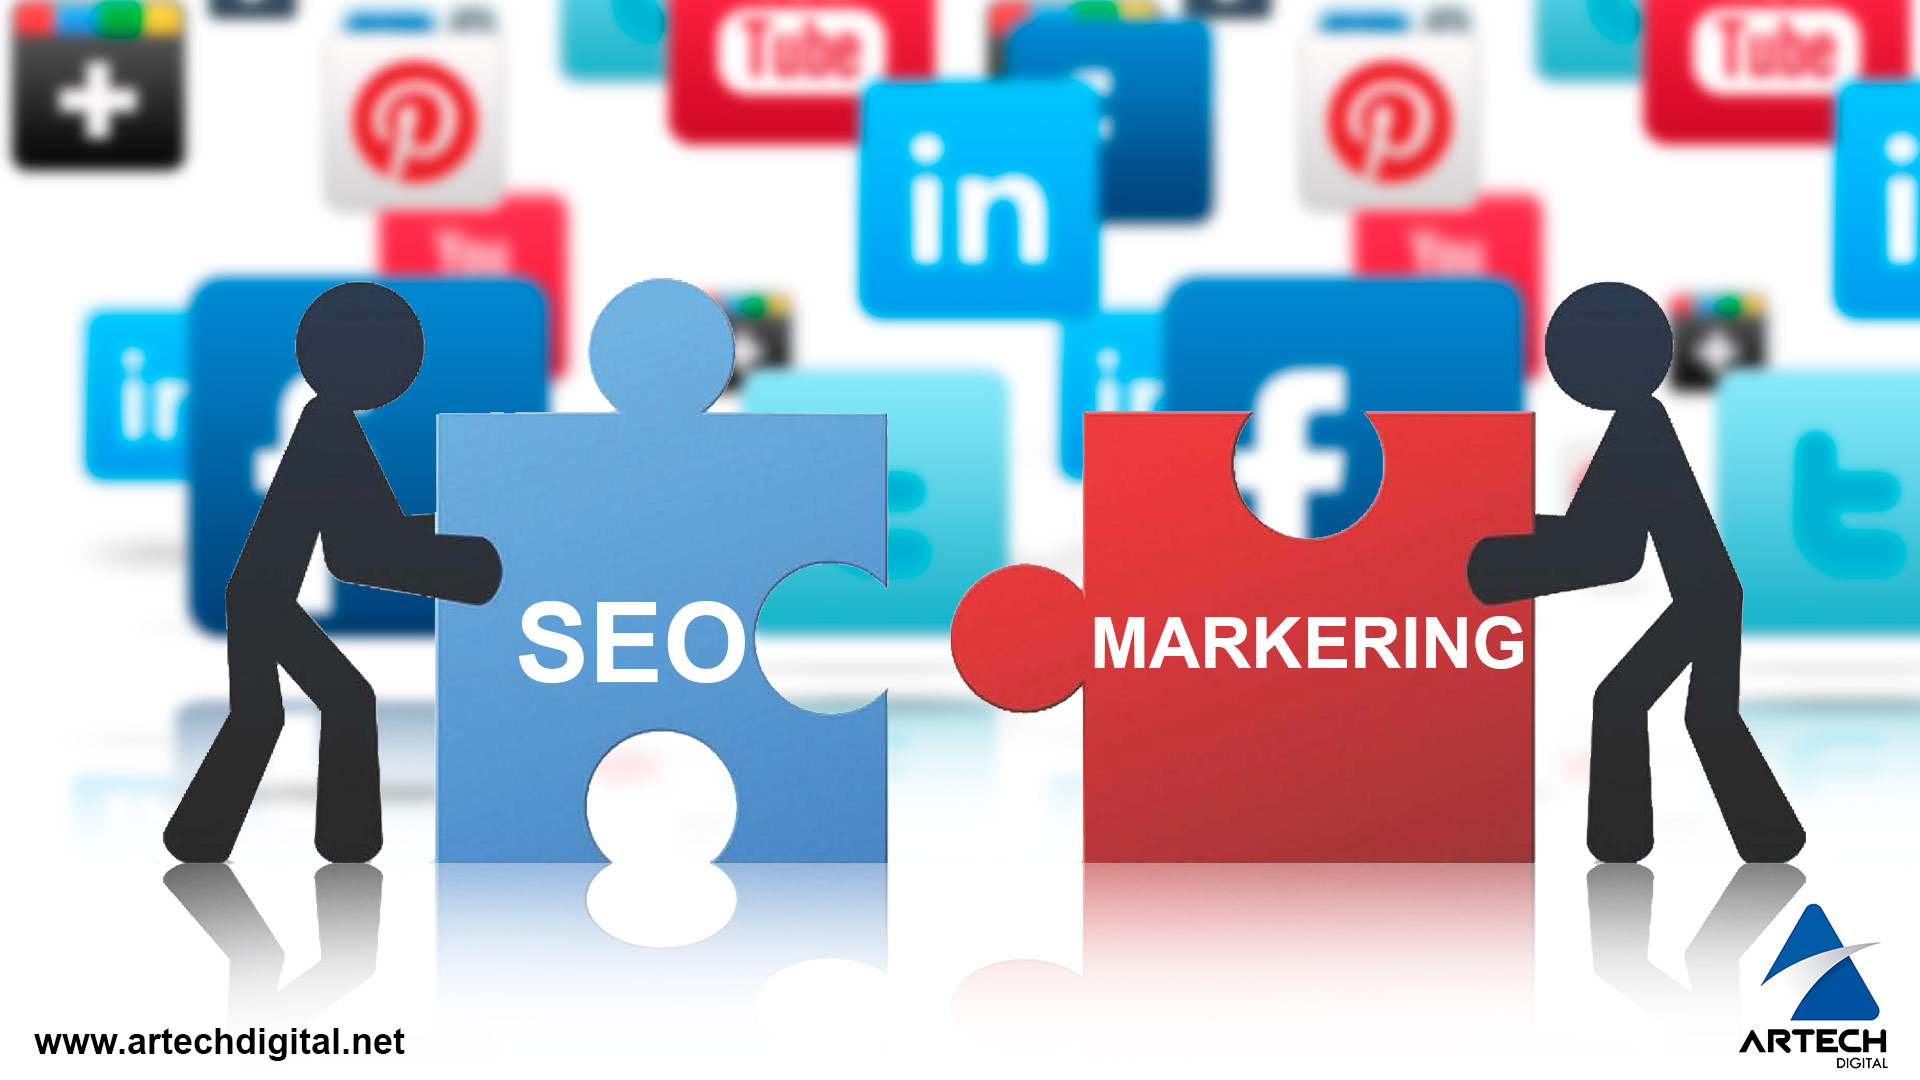 Marketing de Contenido y SEO - artech